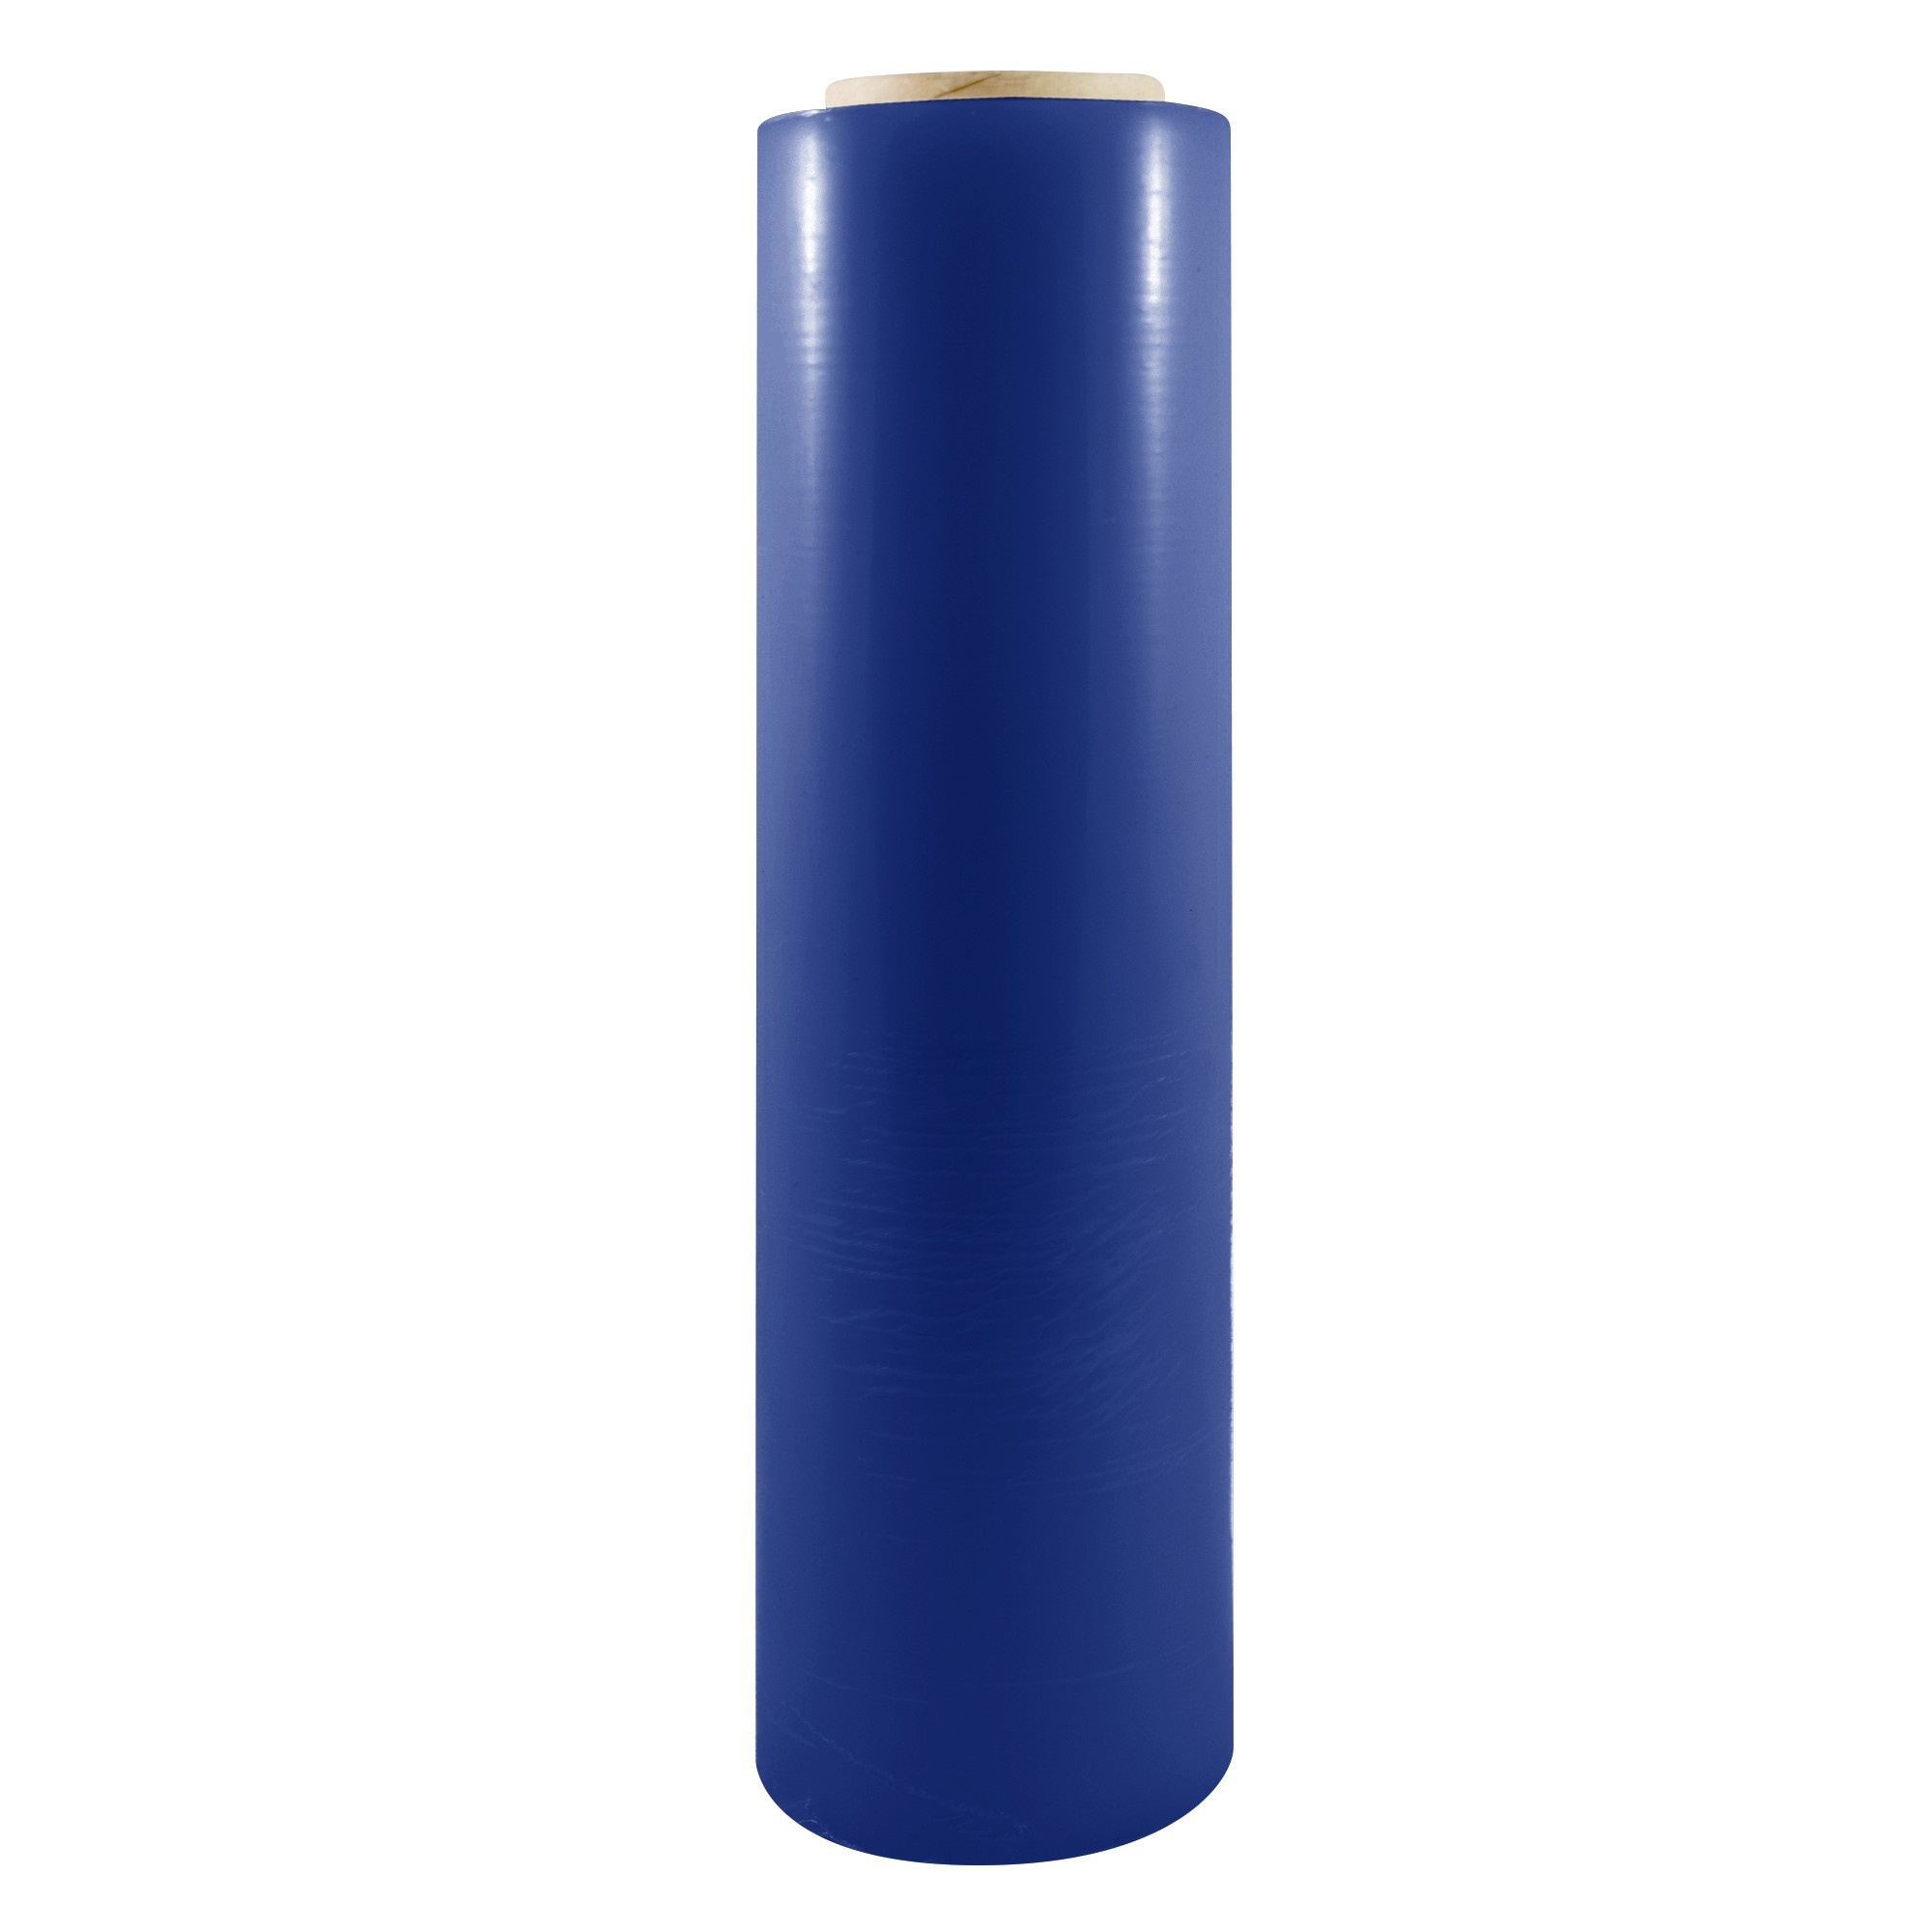 "TOTALPACK® 18"" x 1000' 85 Gauge, 4 Rolls. Gauge Blown Stretch Blue Film"